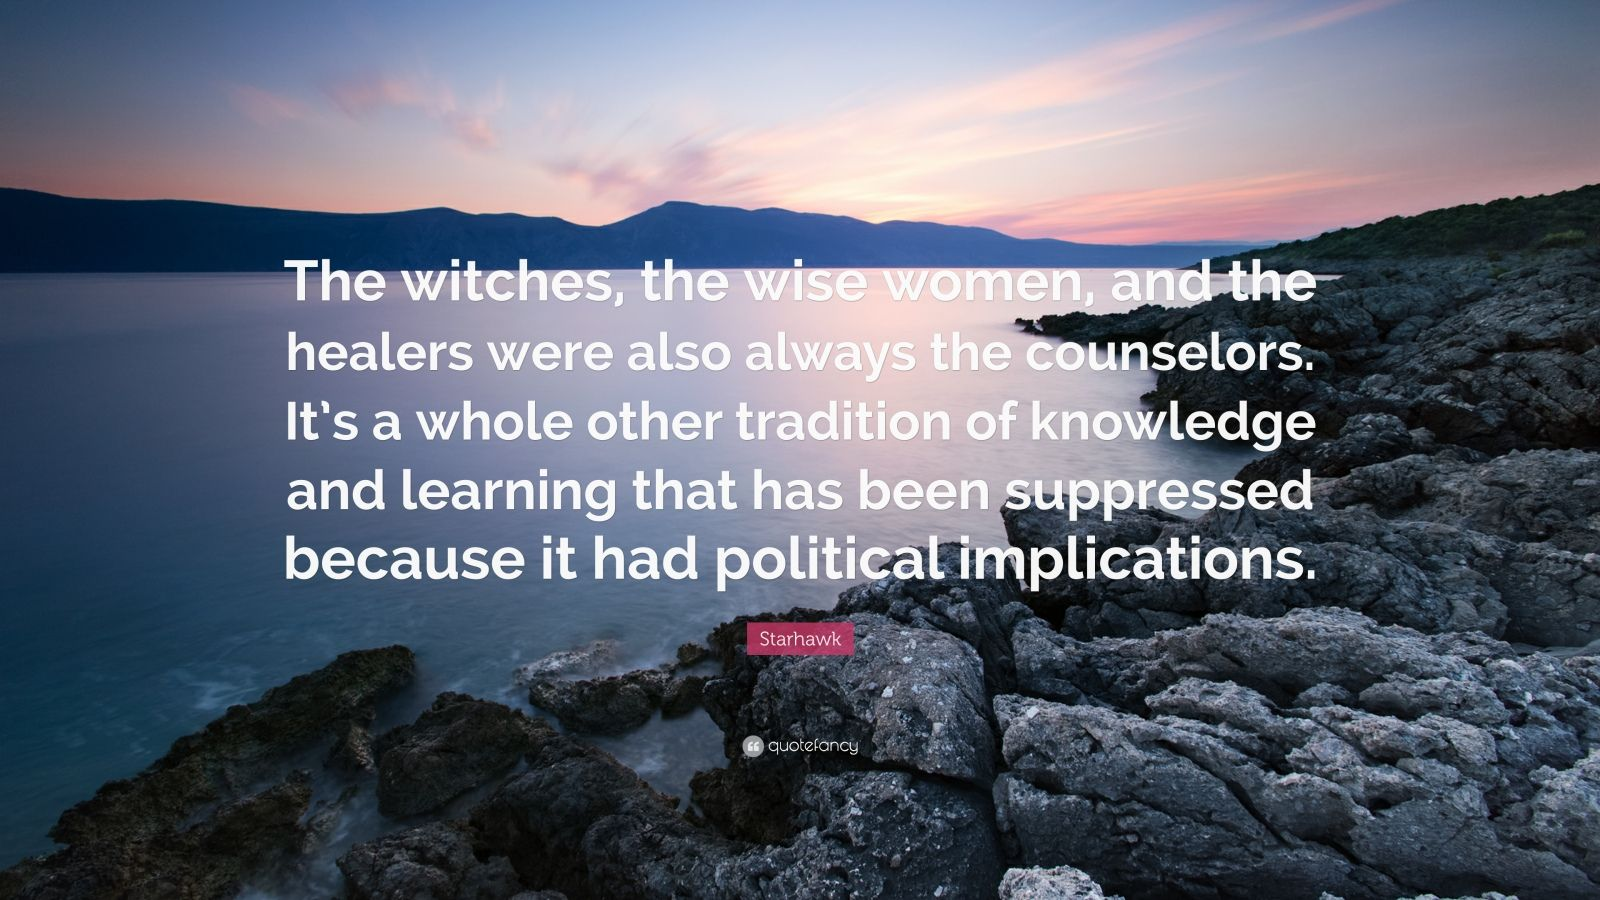 """Starhawk Quote: """"The witches, the wise women, and the healers were also always the counselors. It's a whole other tradition of knowledge and learning that has been suppressed because it had political implications."""""""